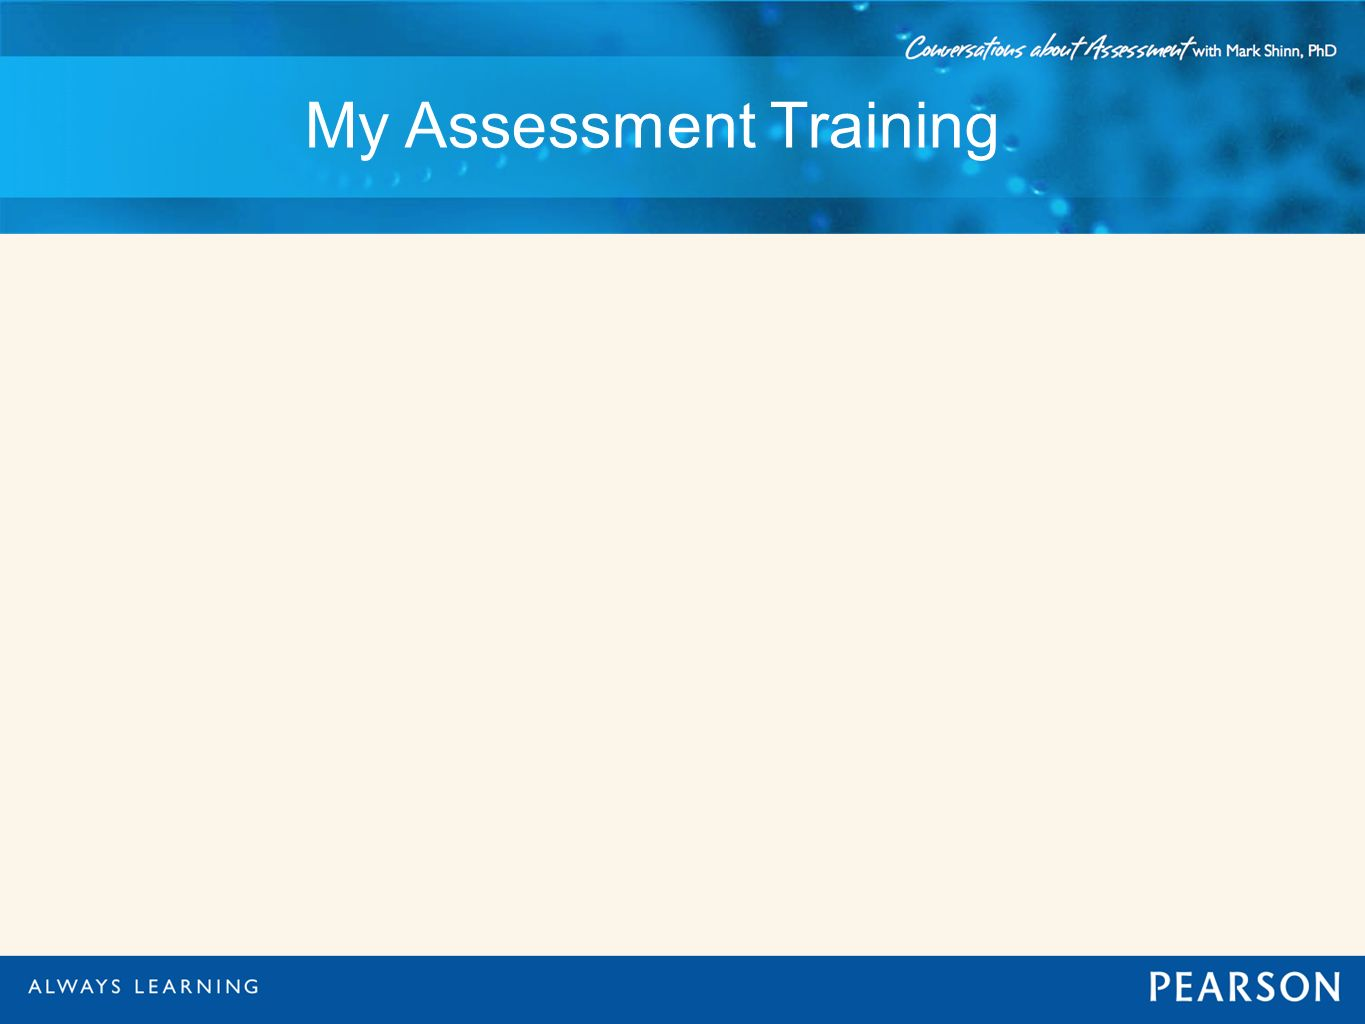 My Assessment Training